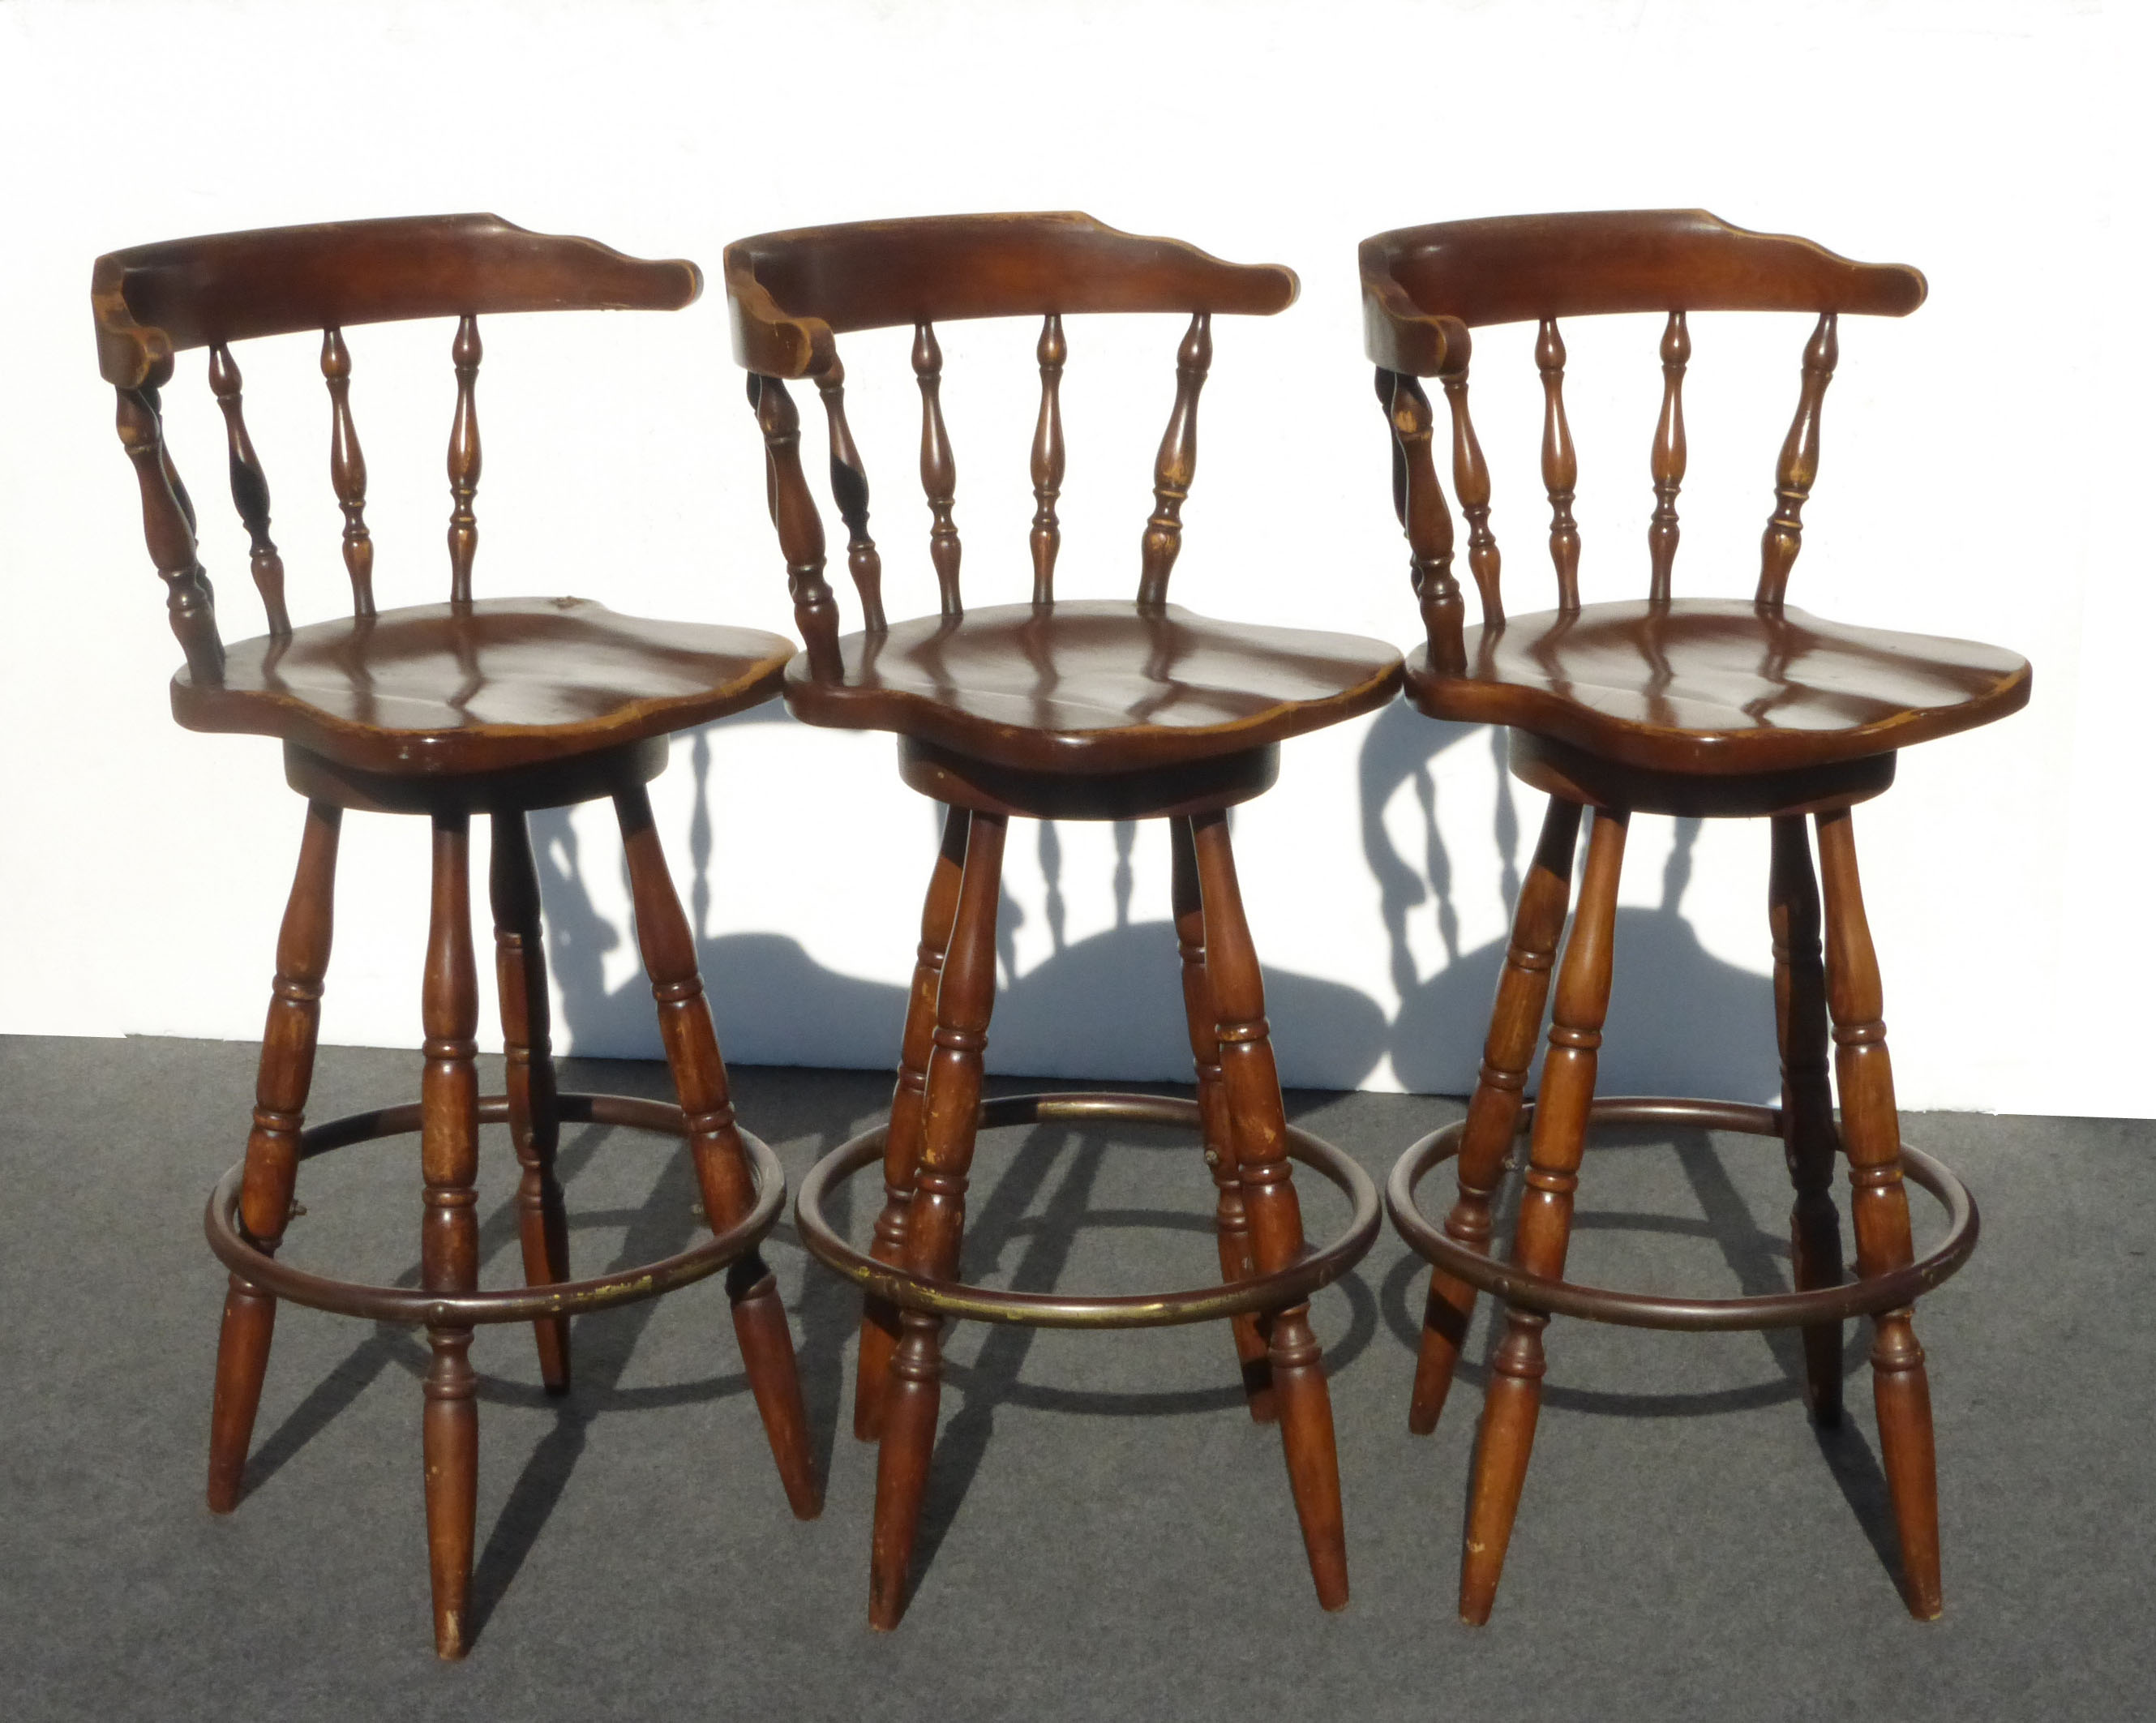 Exceptional French Country Wood Swivel Bar Stools   Set Of 3   Image 3 Of 11